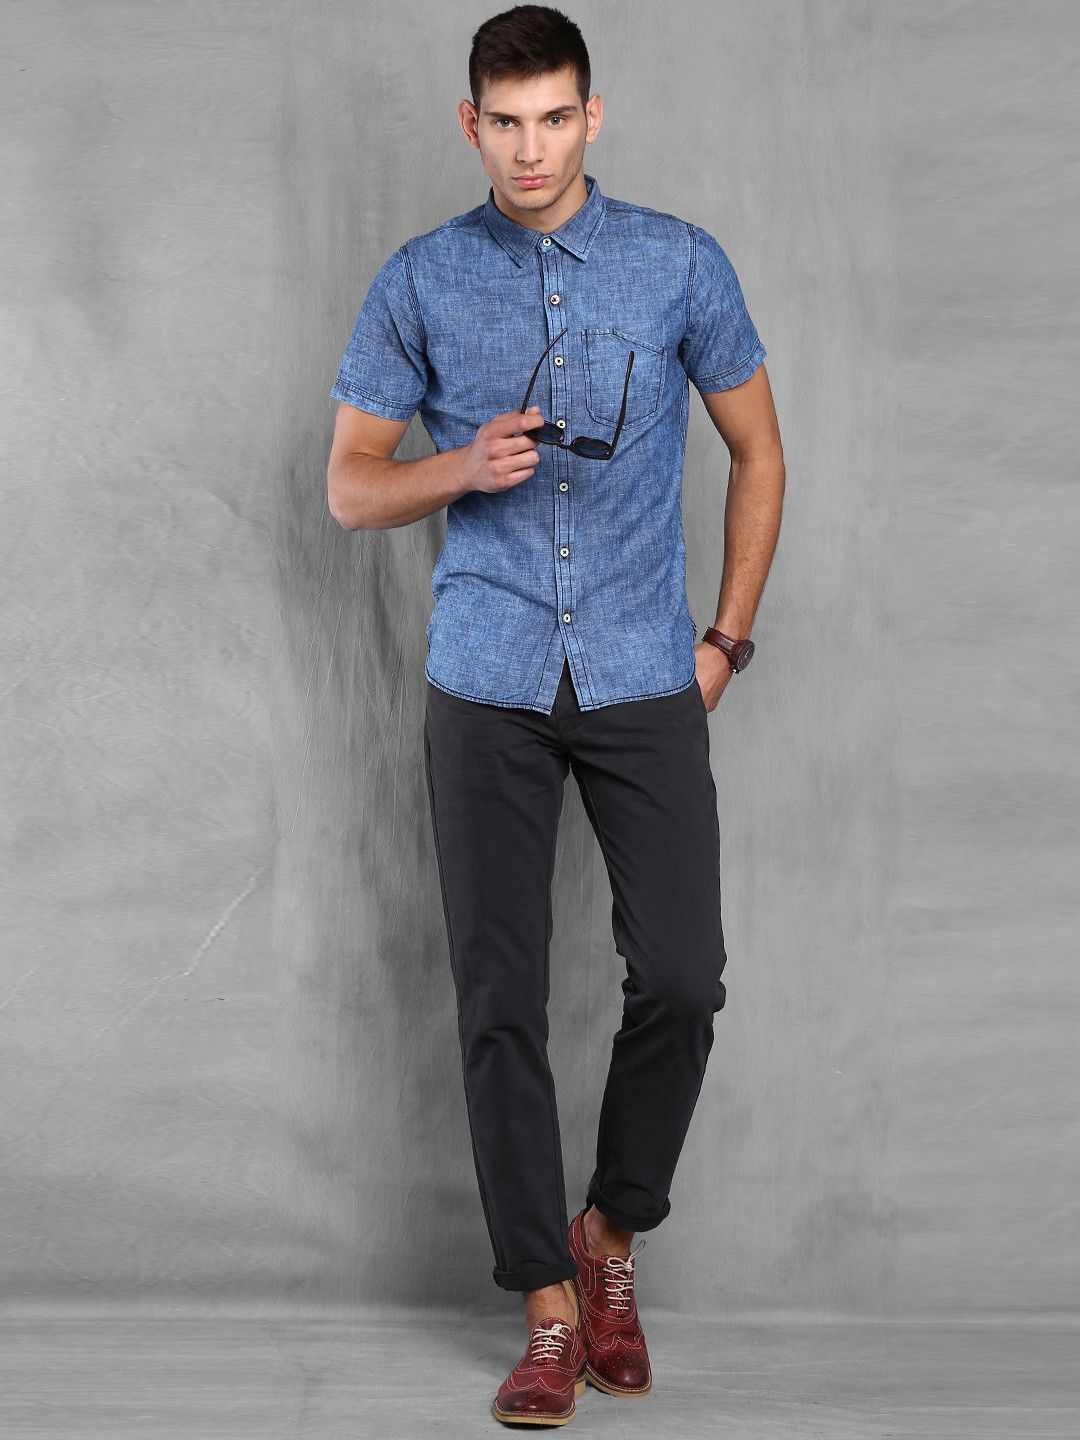 Black t shirt grey pants - Wrogn Charcoal Grey Slim Fit Chino Trousers Denim Shirt With Black Chino And Loafer Seems Perfect